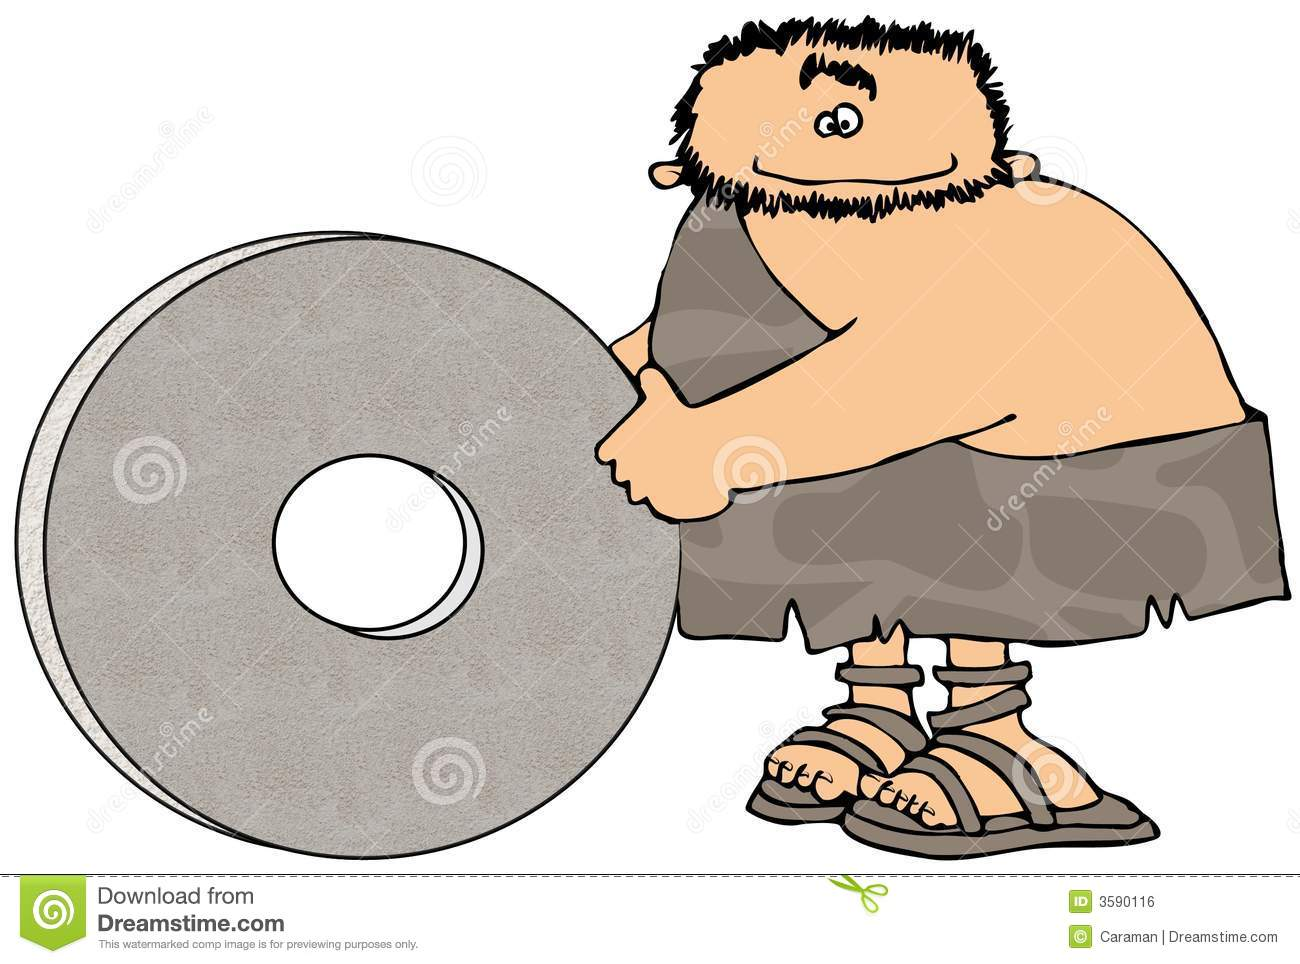 Caveman And The Wheel Royalty Free Stock Image - Image: 3590116